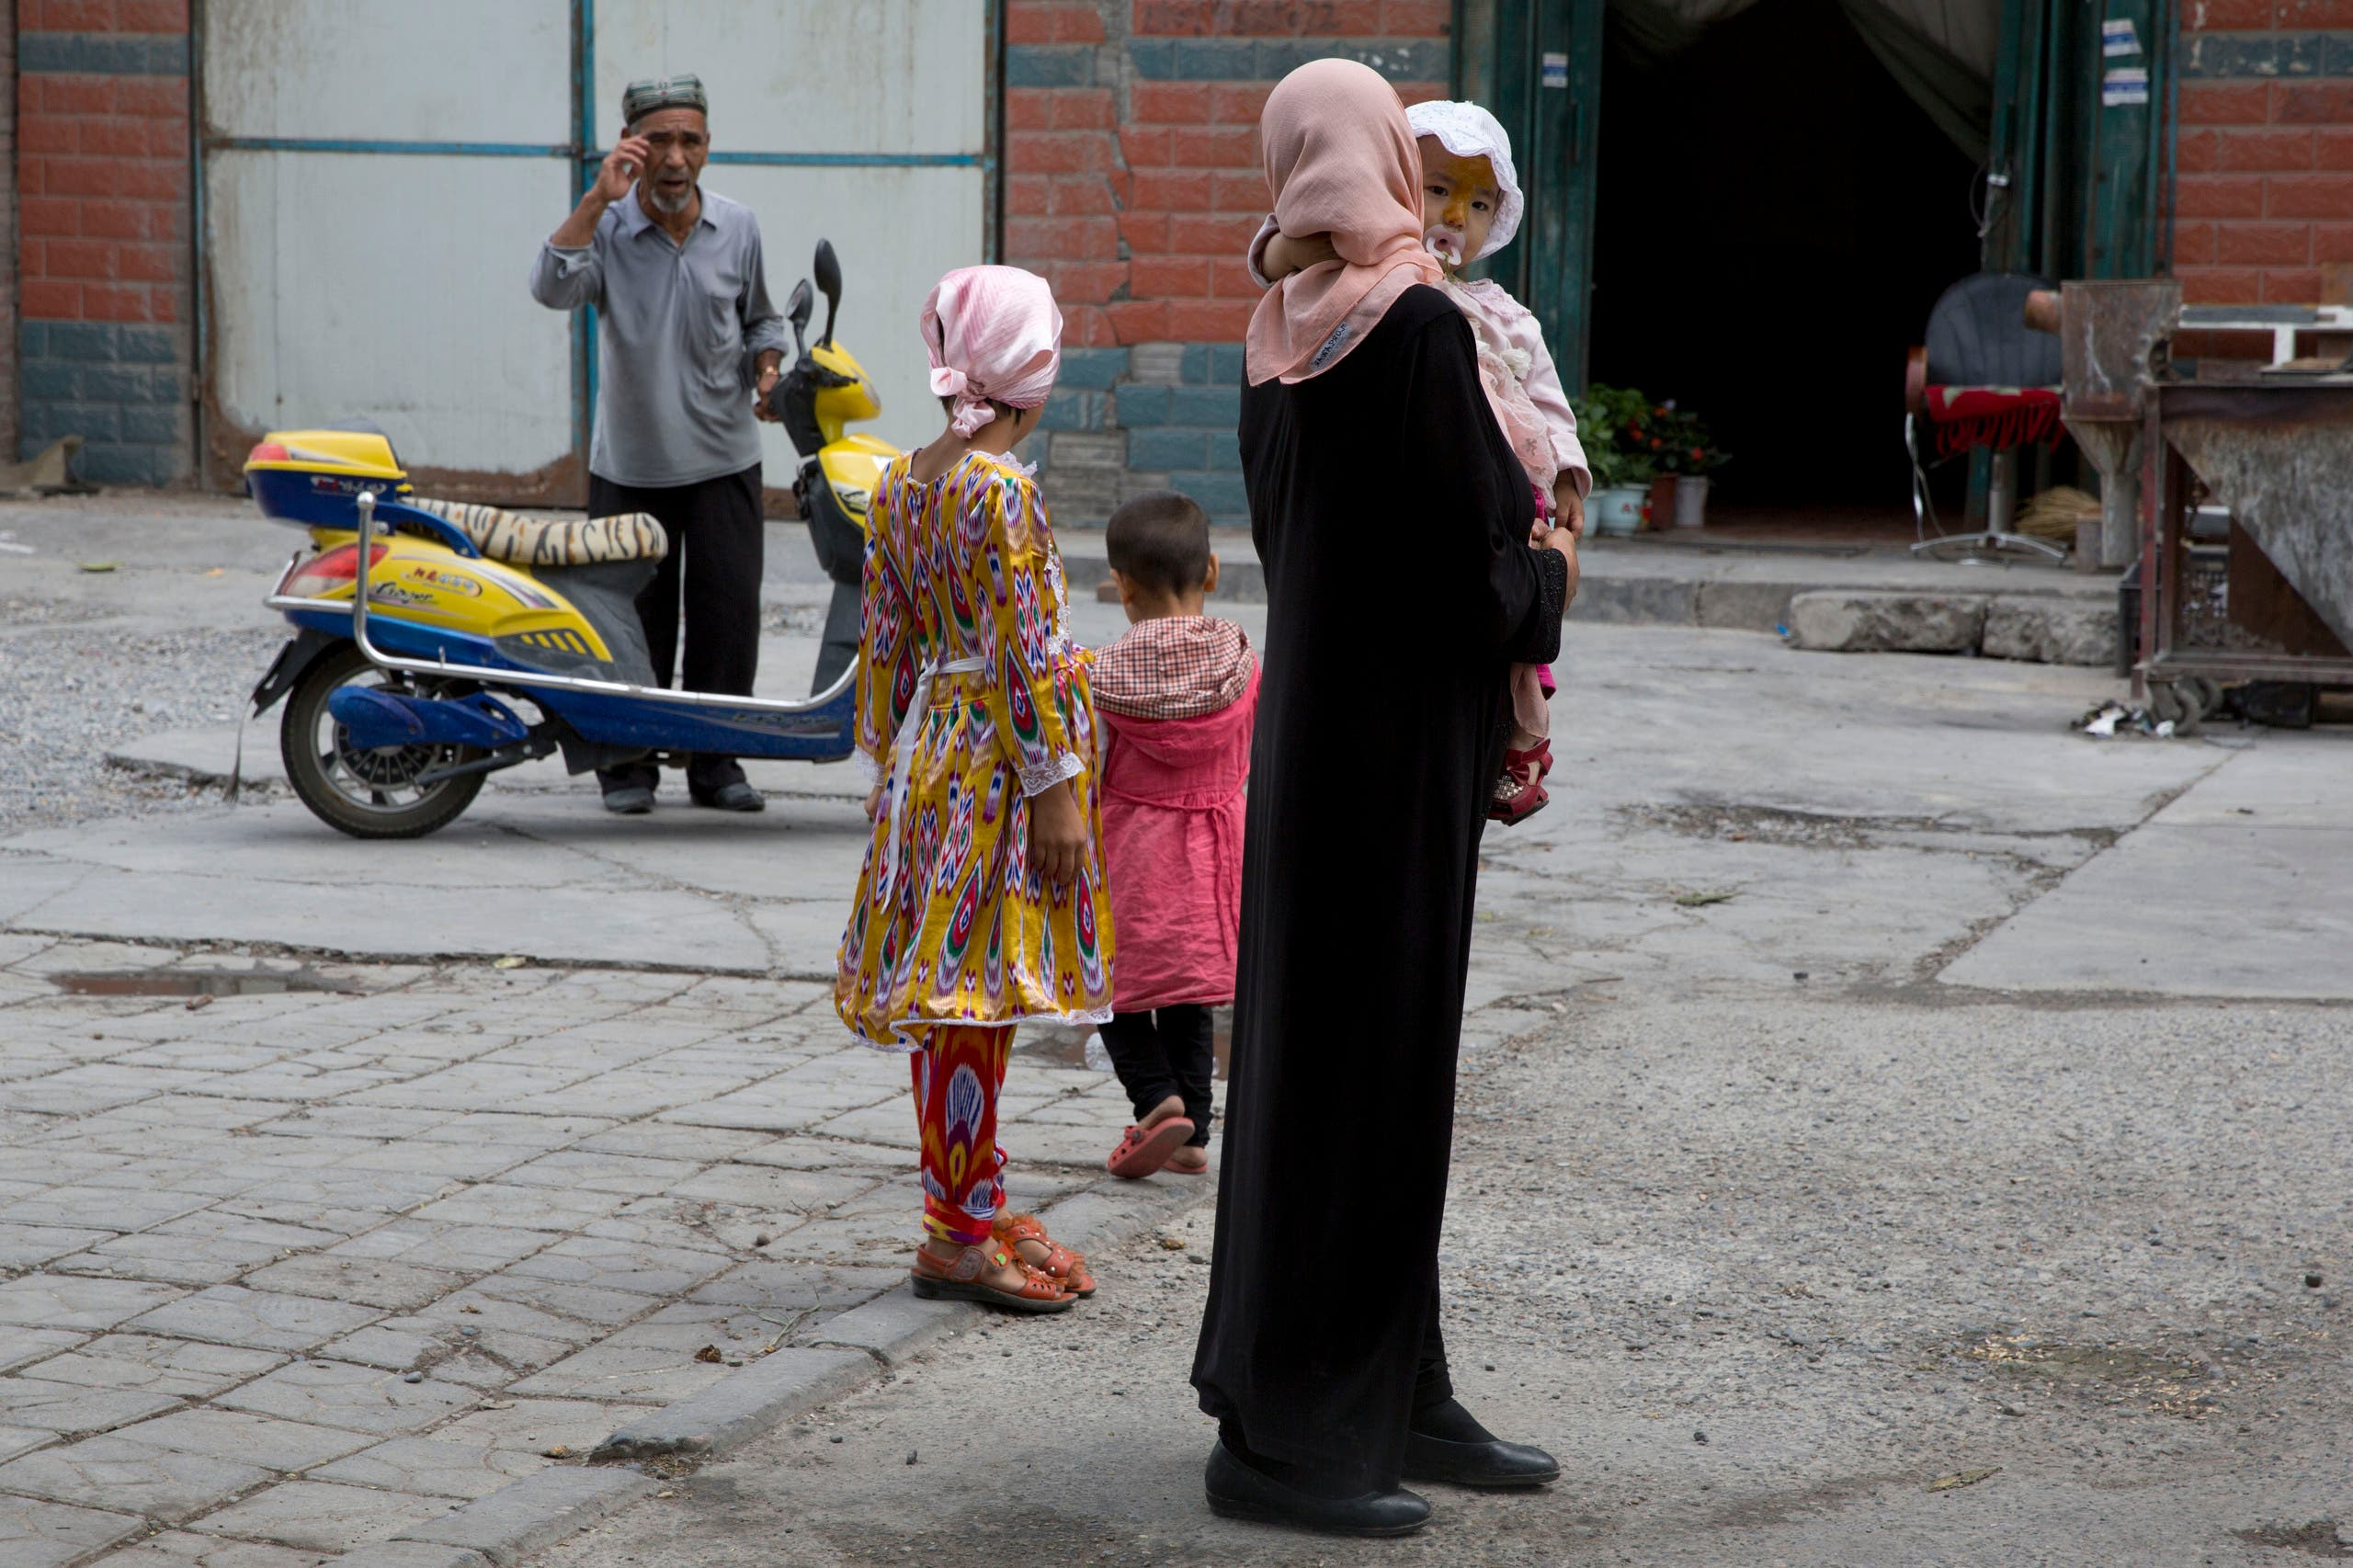 A Uighur woman wears a full length garment and headscarf in the city of Aksu in western China's Xinjiang province. (File photo: AP)